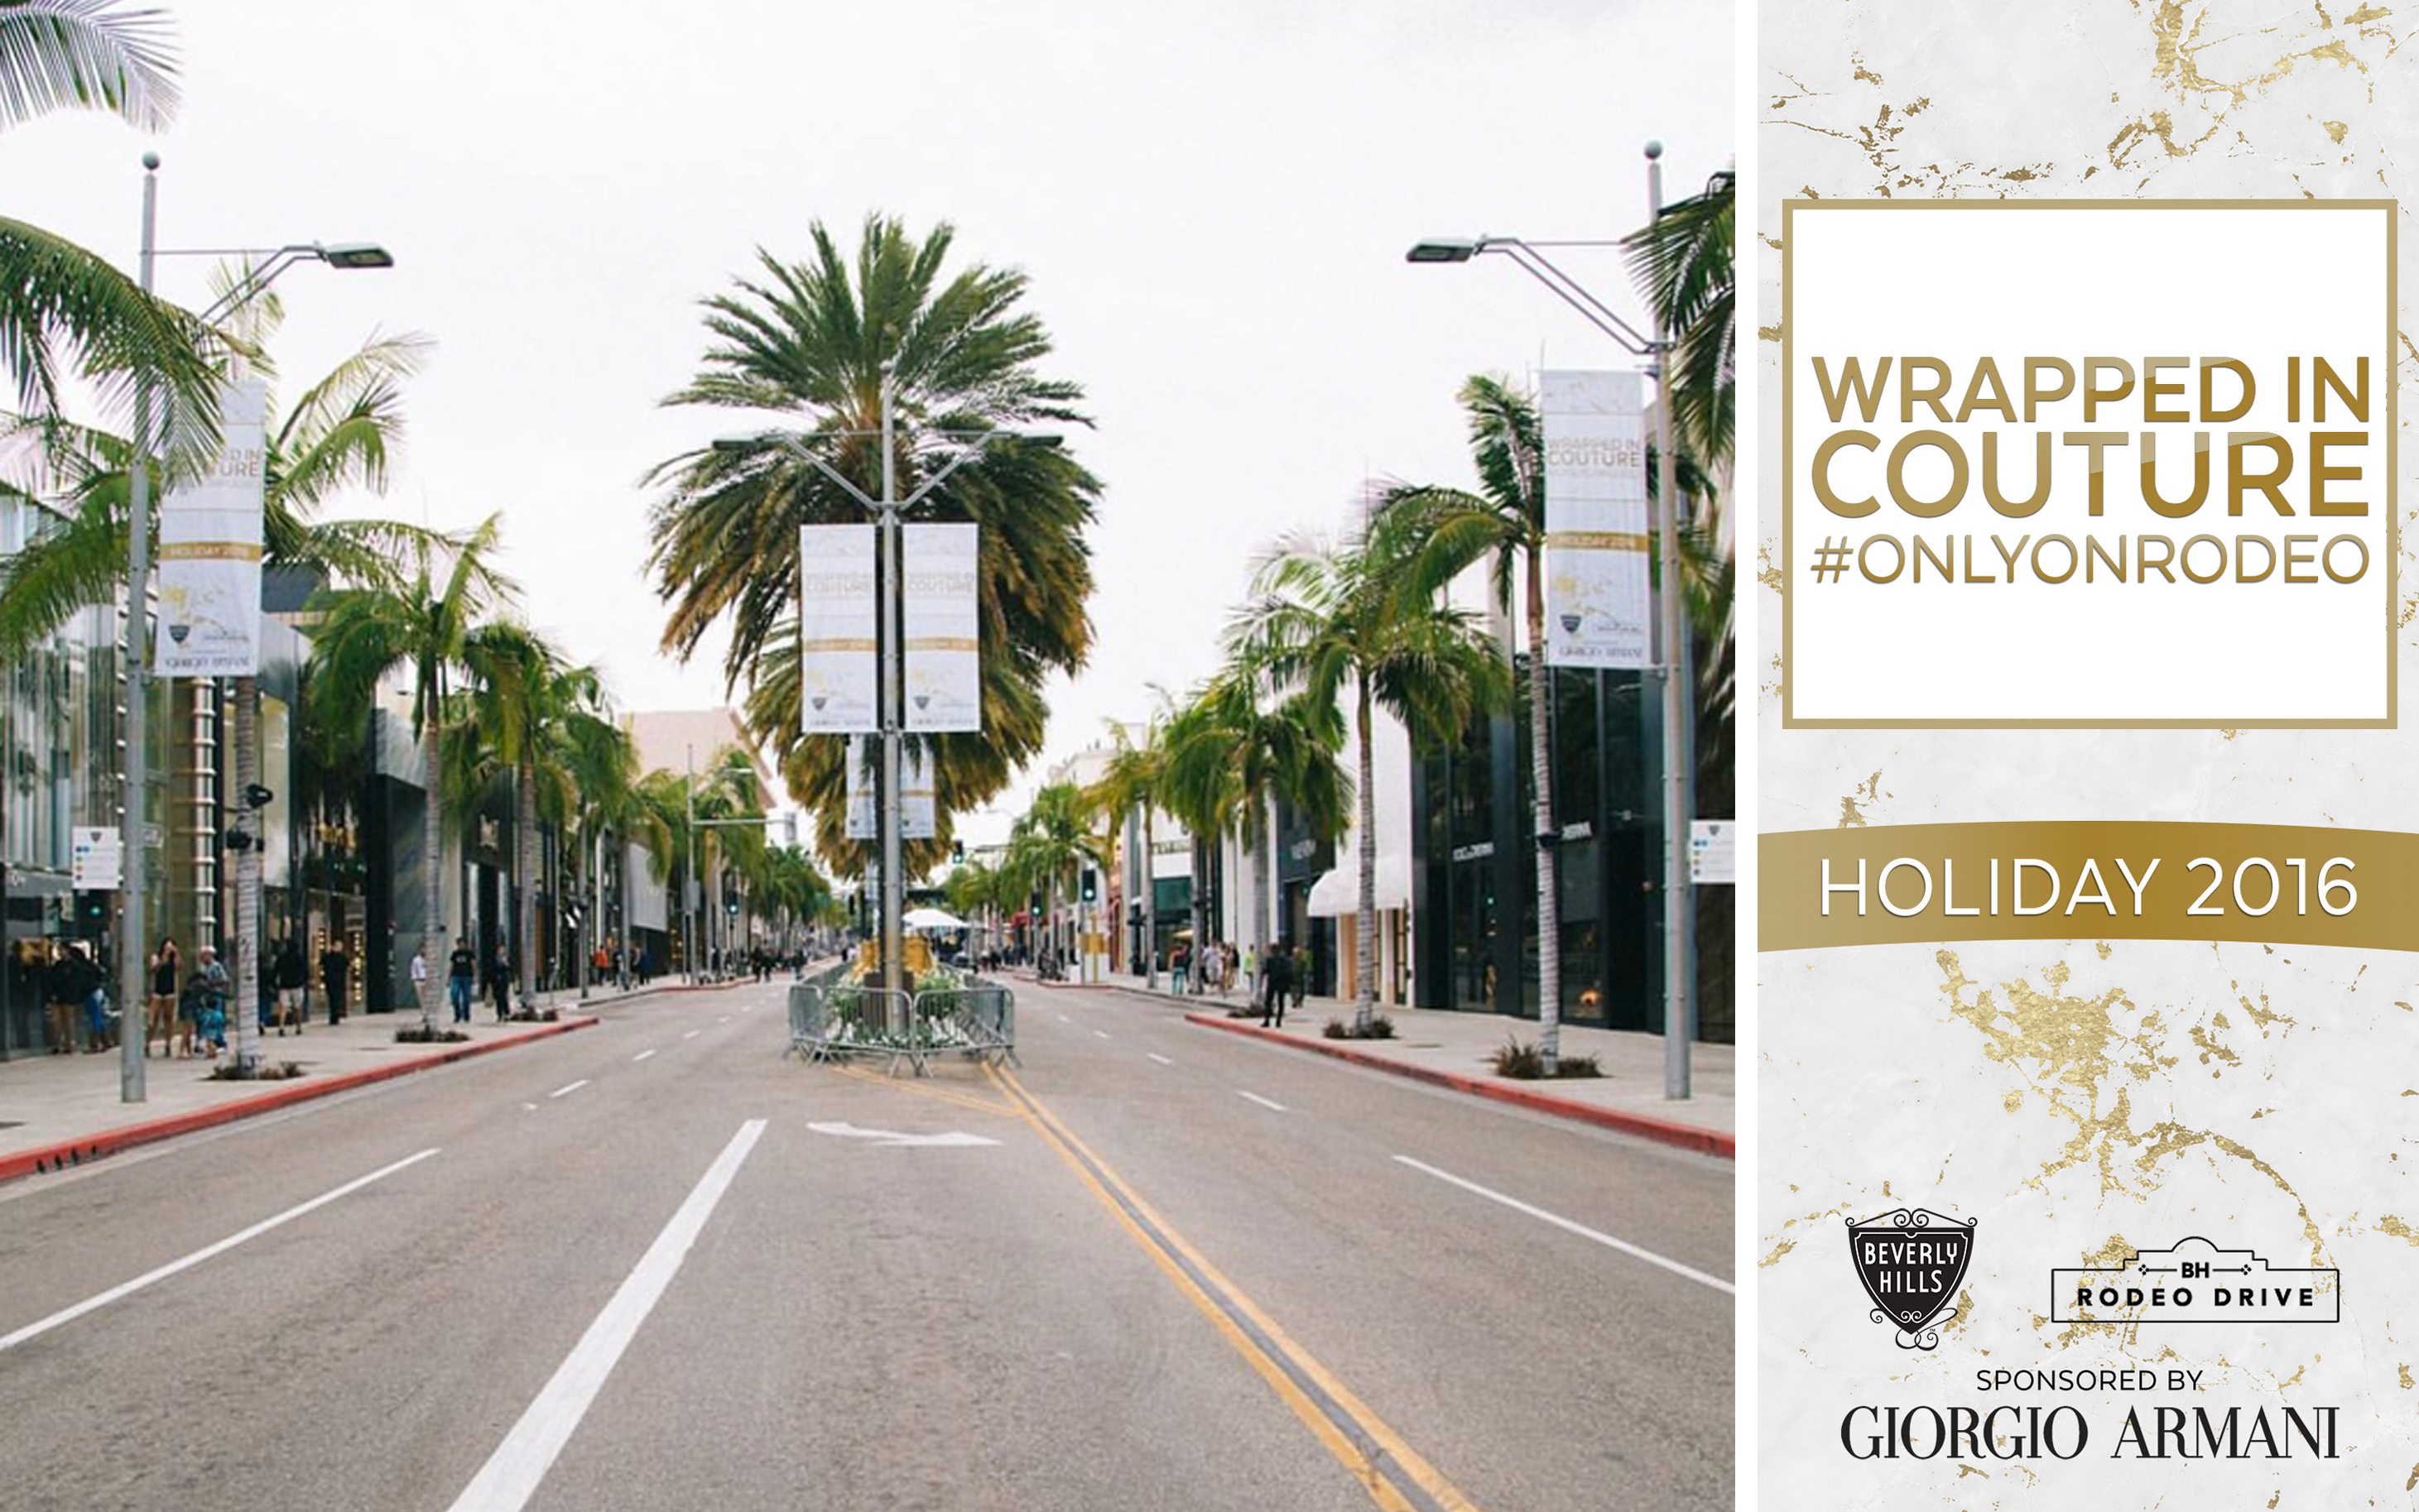 Rodeo Drive Holiday 2016 Banner